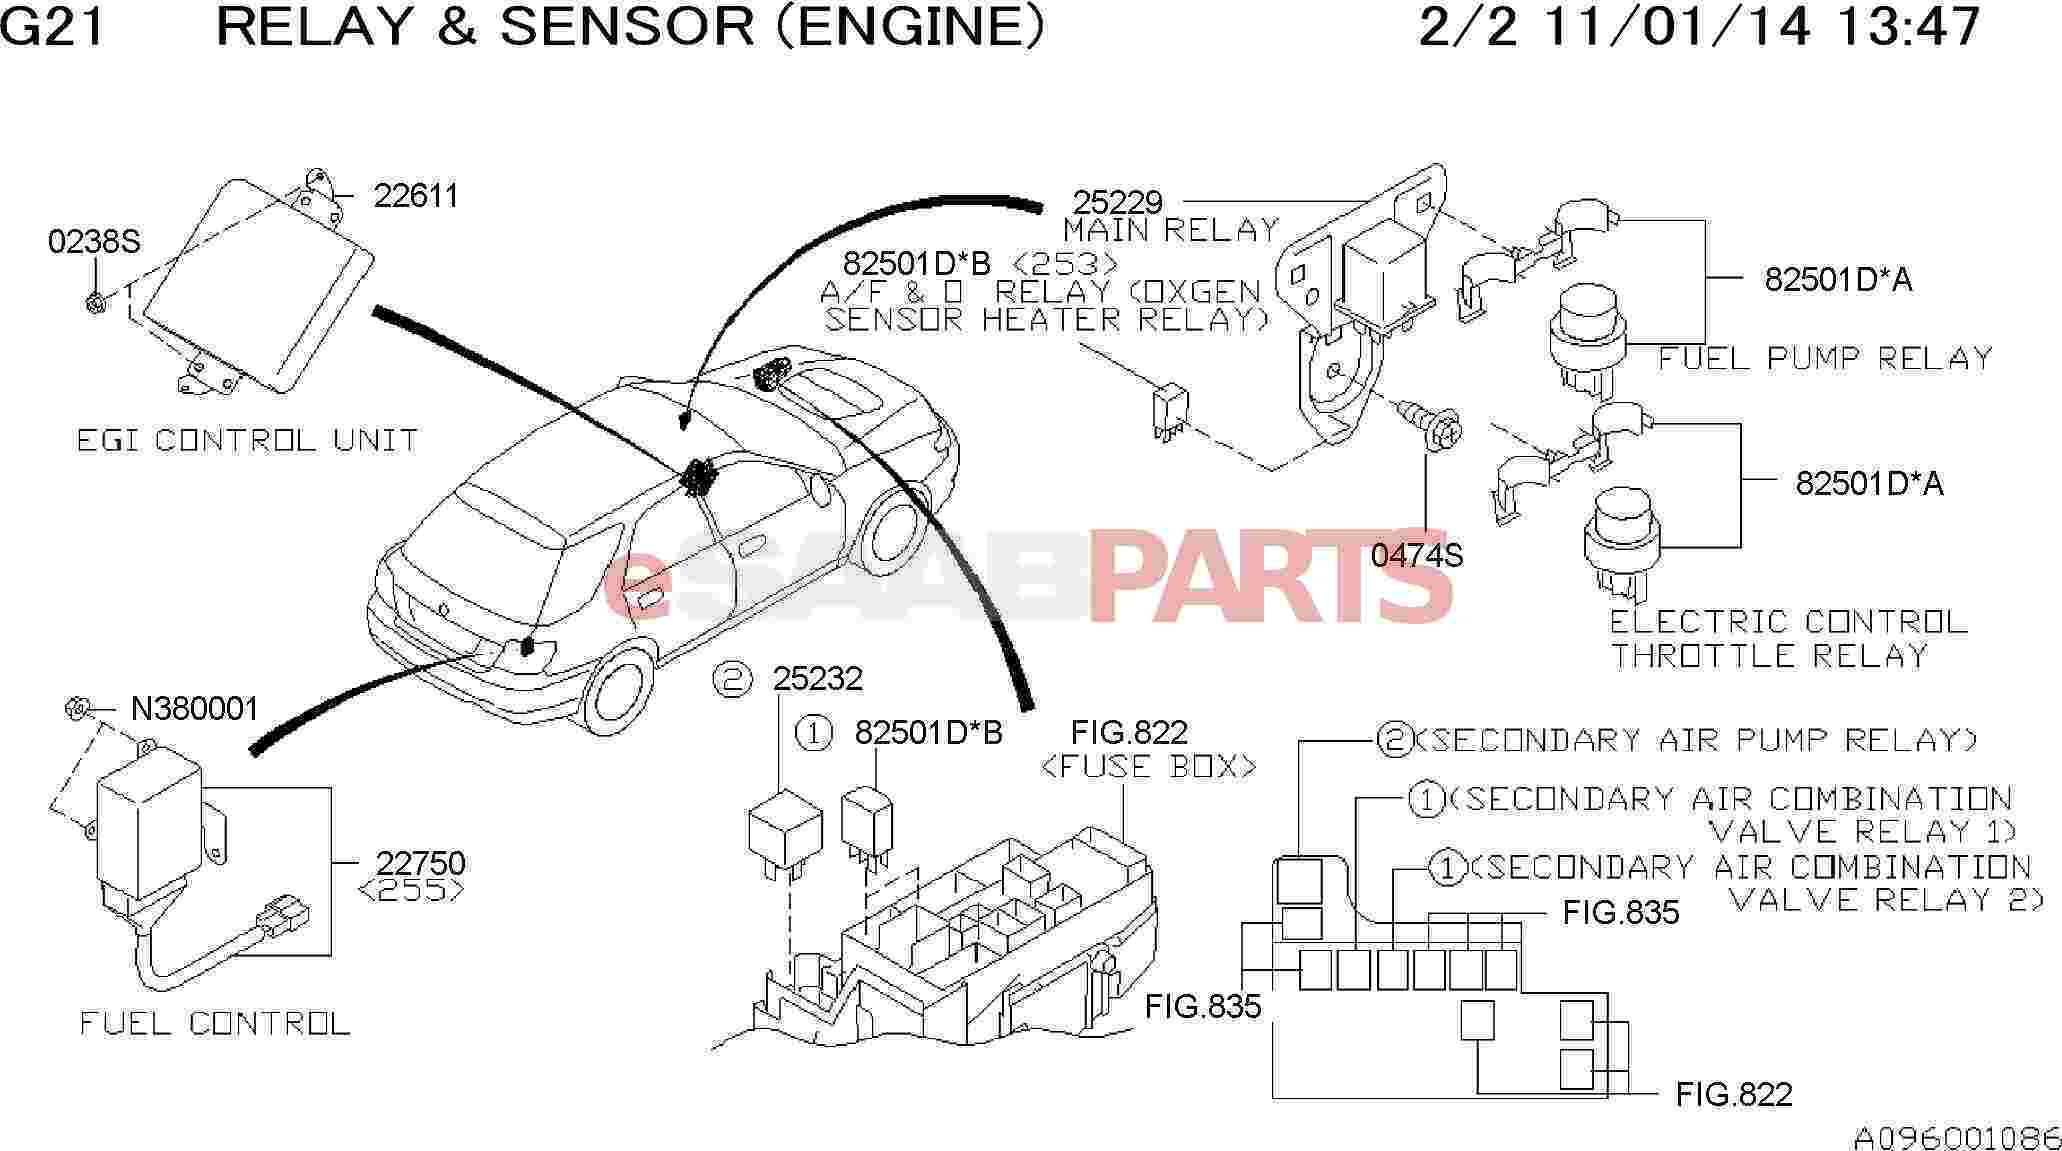 32008611 Saab Relay Genuine Parts From 2005 9 2x Fuse Box Diagram Image 82501d B